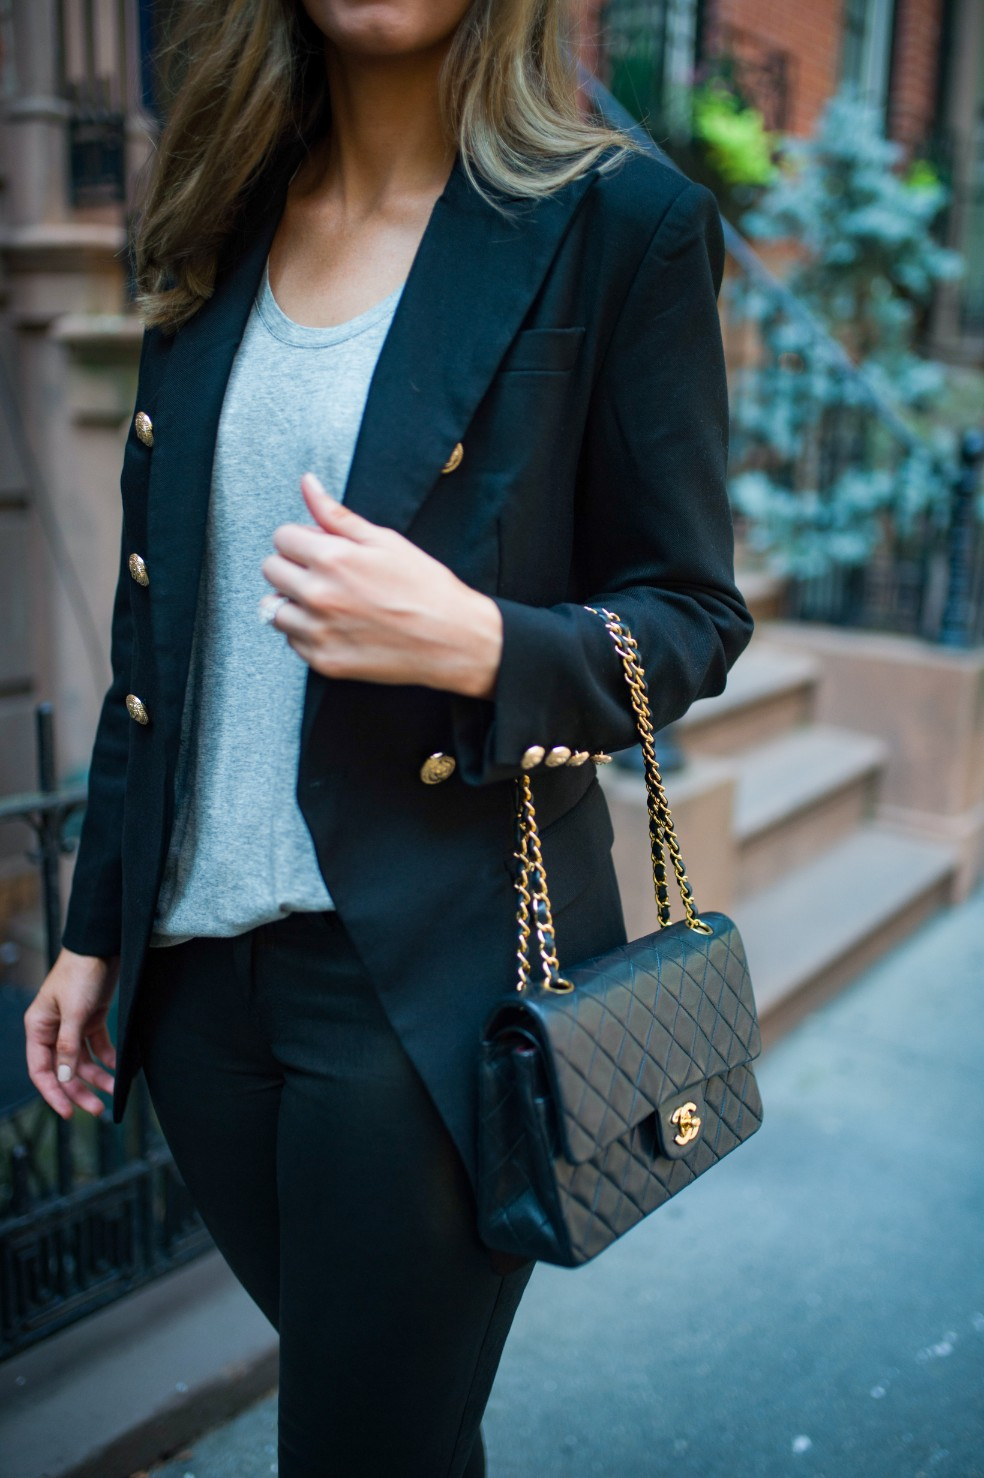 blazer and leather pants outfit ideas grey tee and leather chanel flap bag fashion blogger new york street style 4